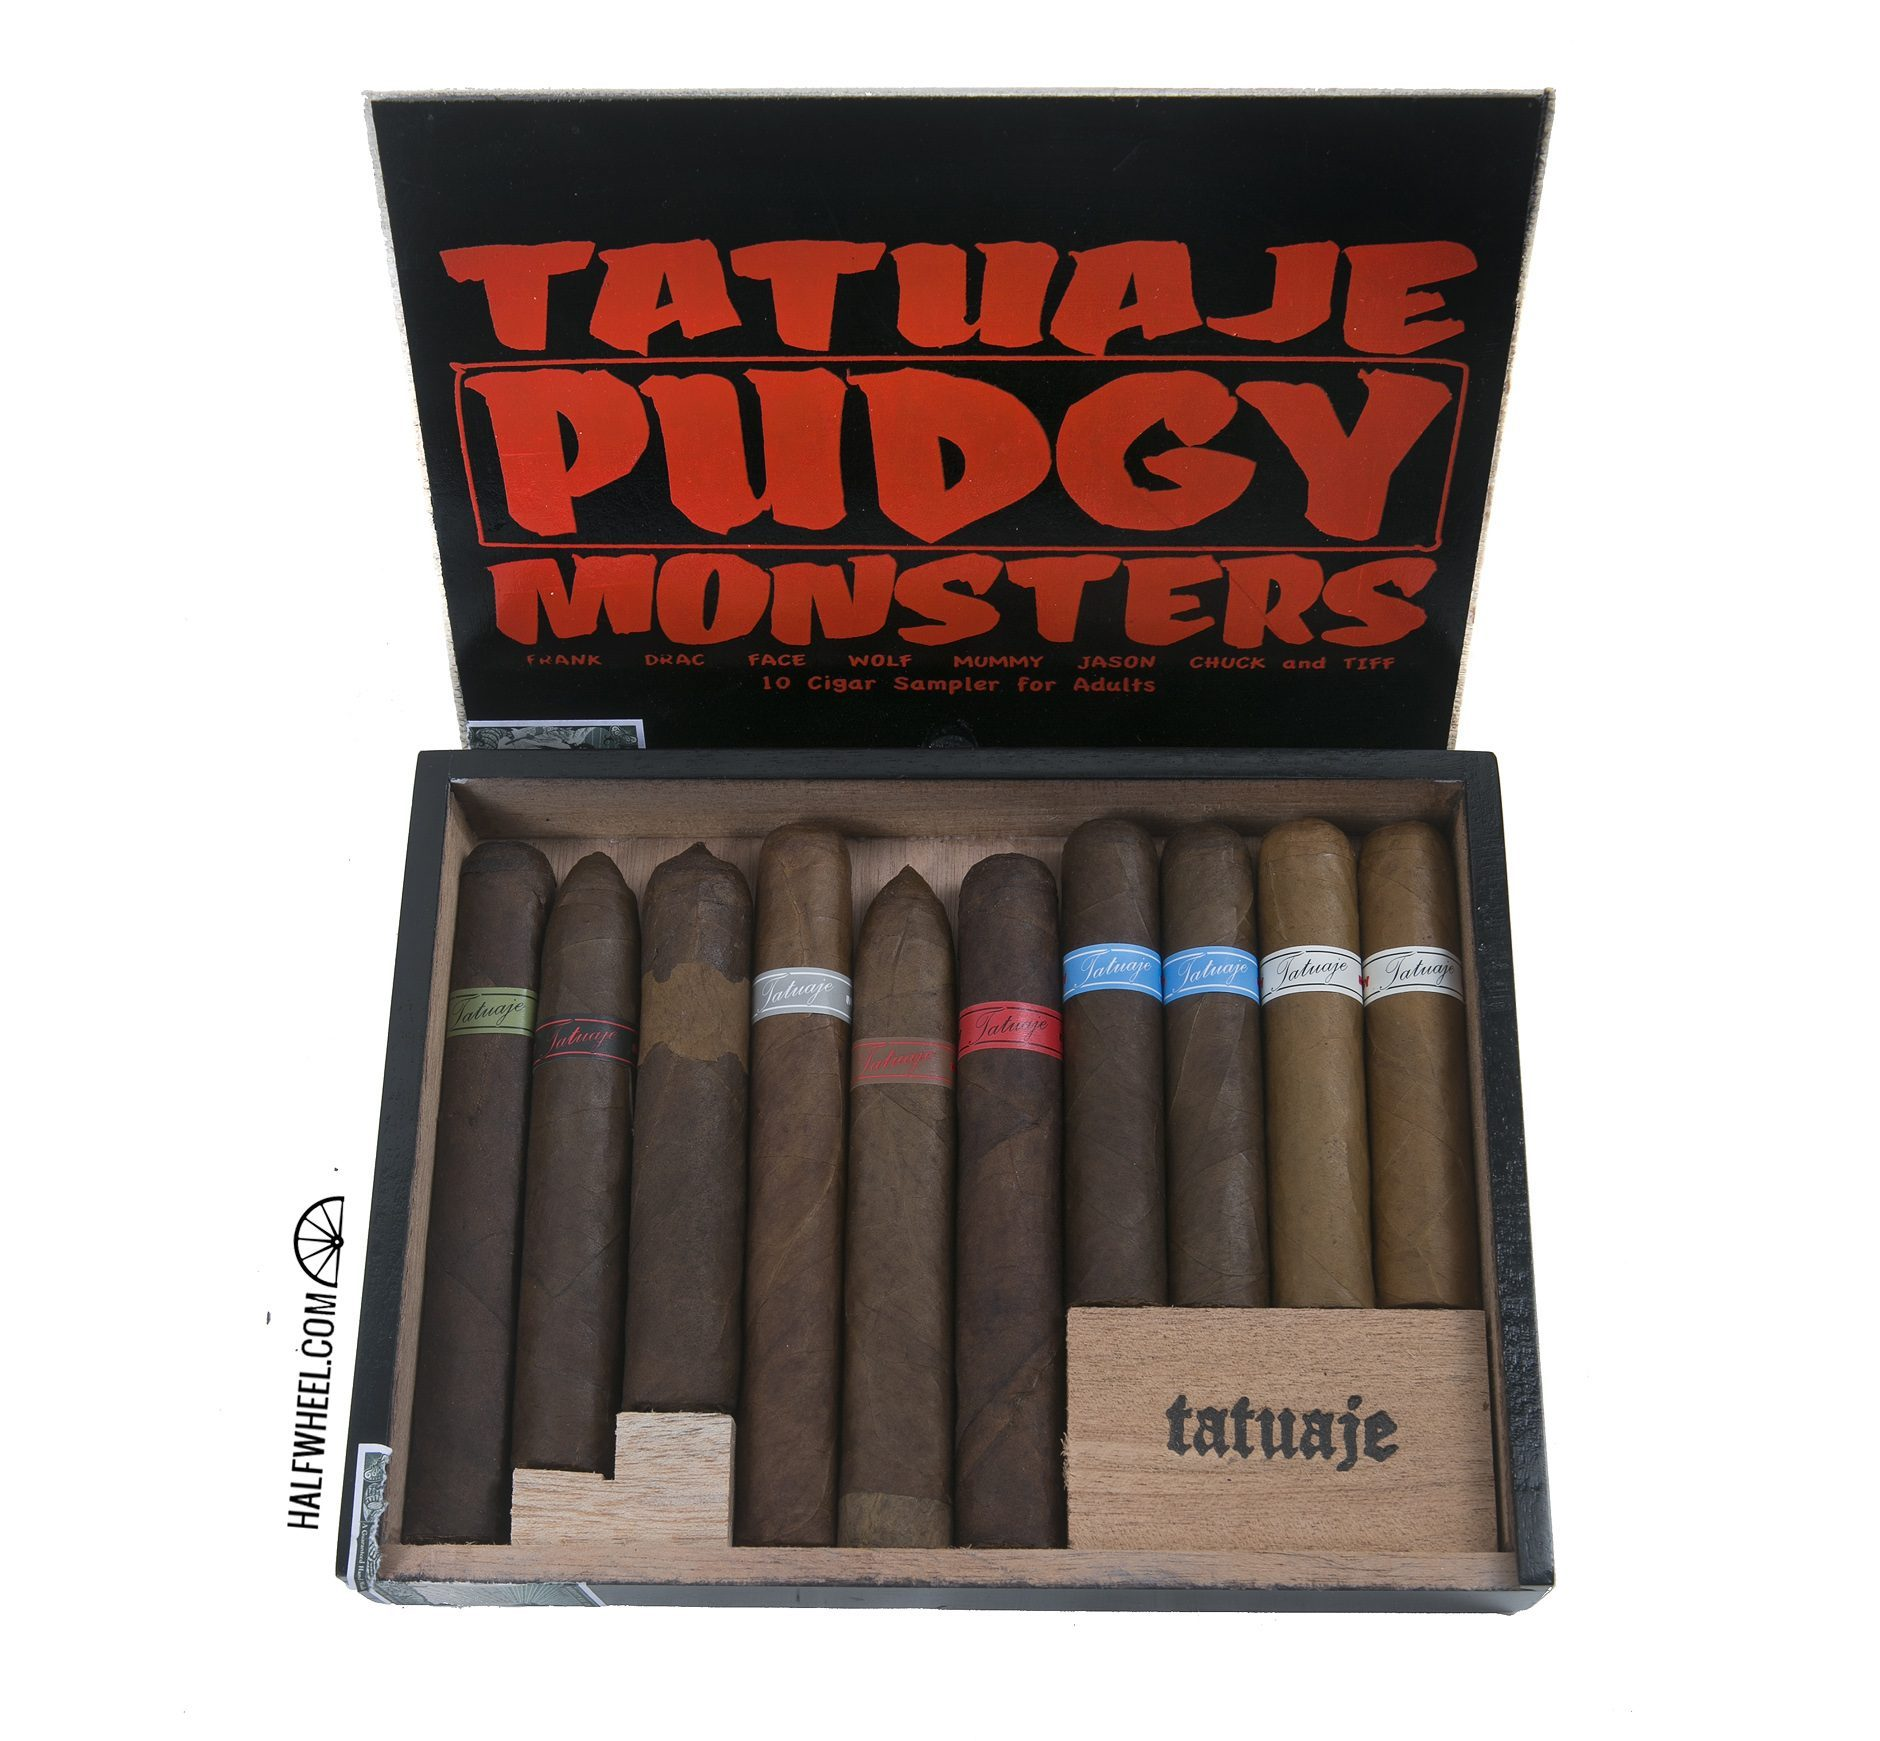 Tatuaje Pudgy Monster Box 2